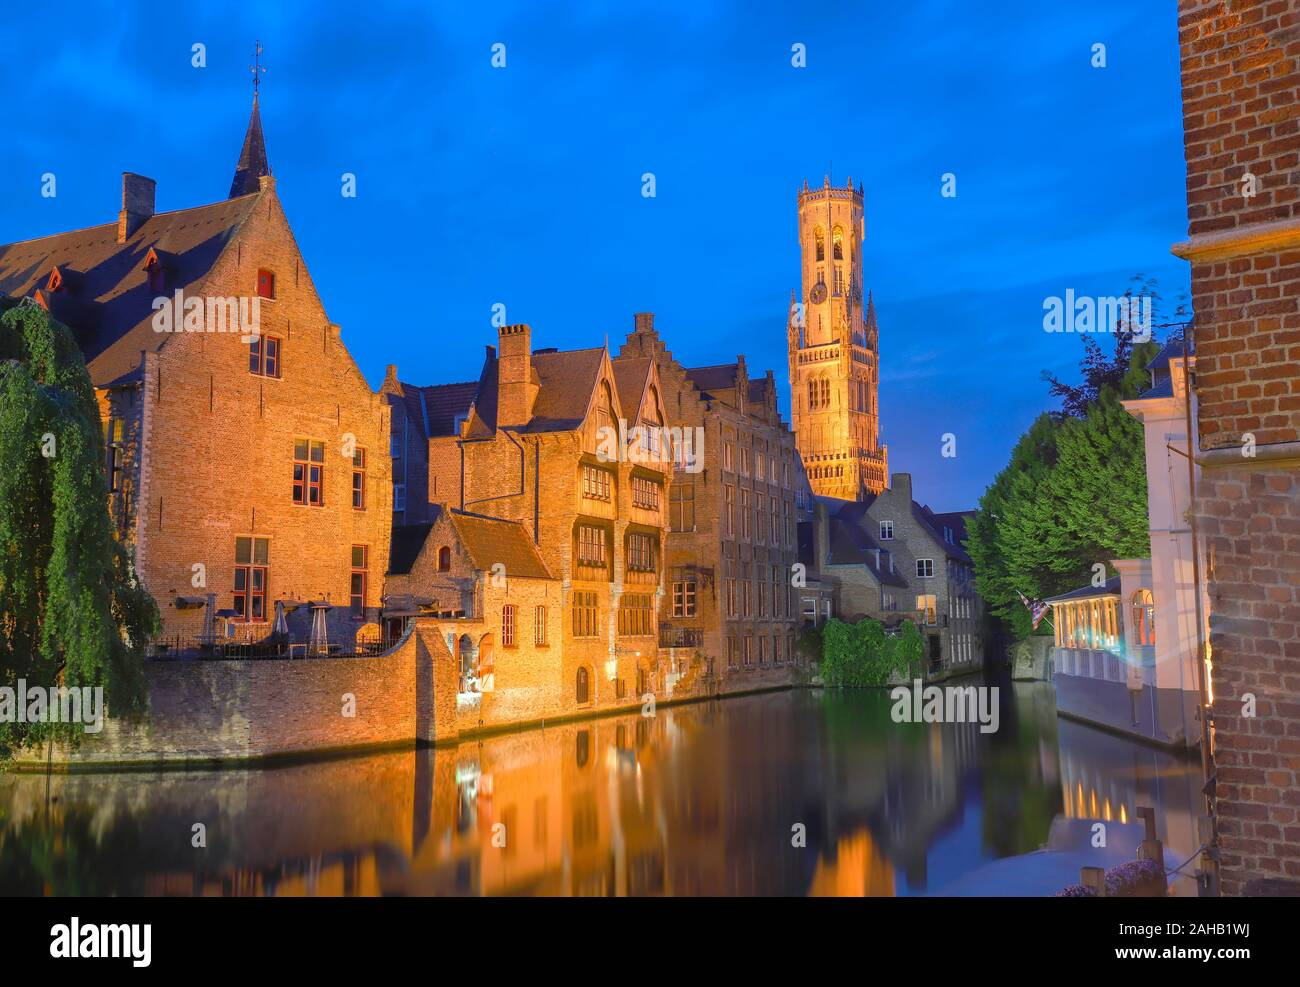 Famous view of Bruges tourist landmark attraction - Rozenhoedkaai canal with Belfry and old houses along canal with tree in the night. Belgium Stock Photo